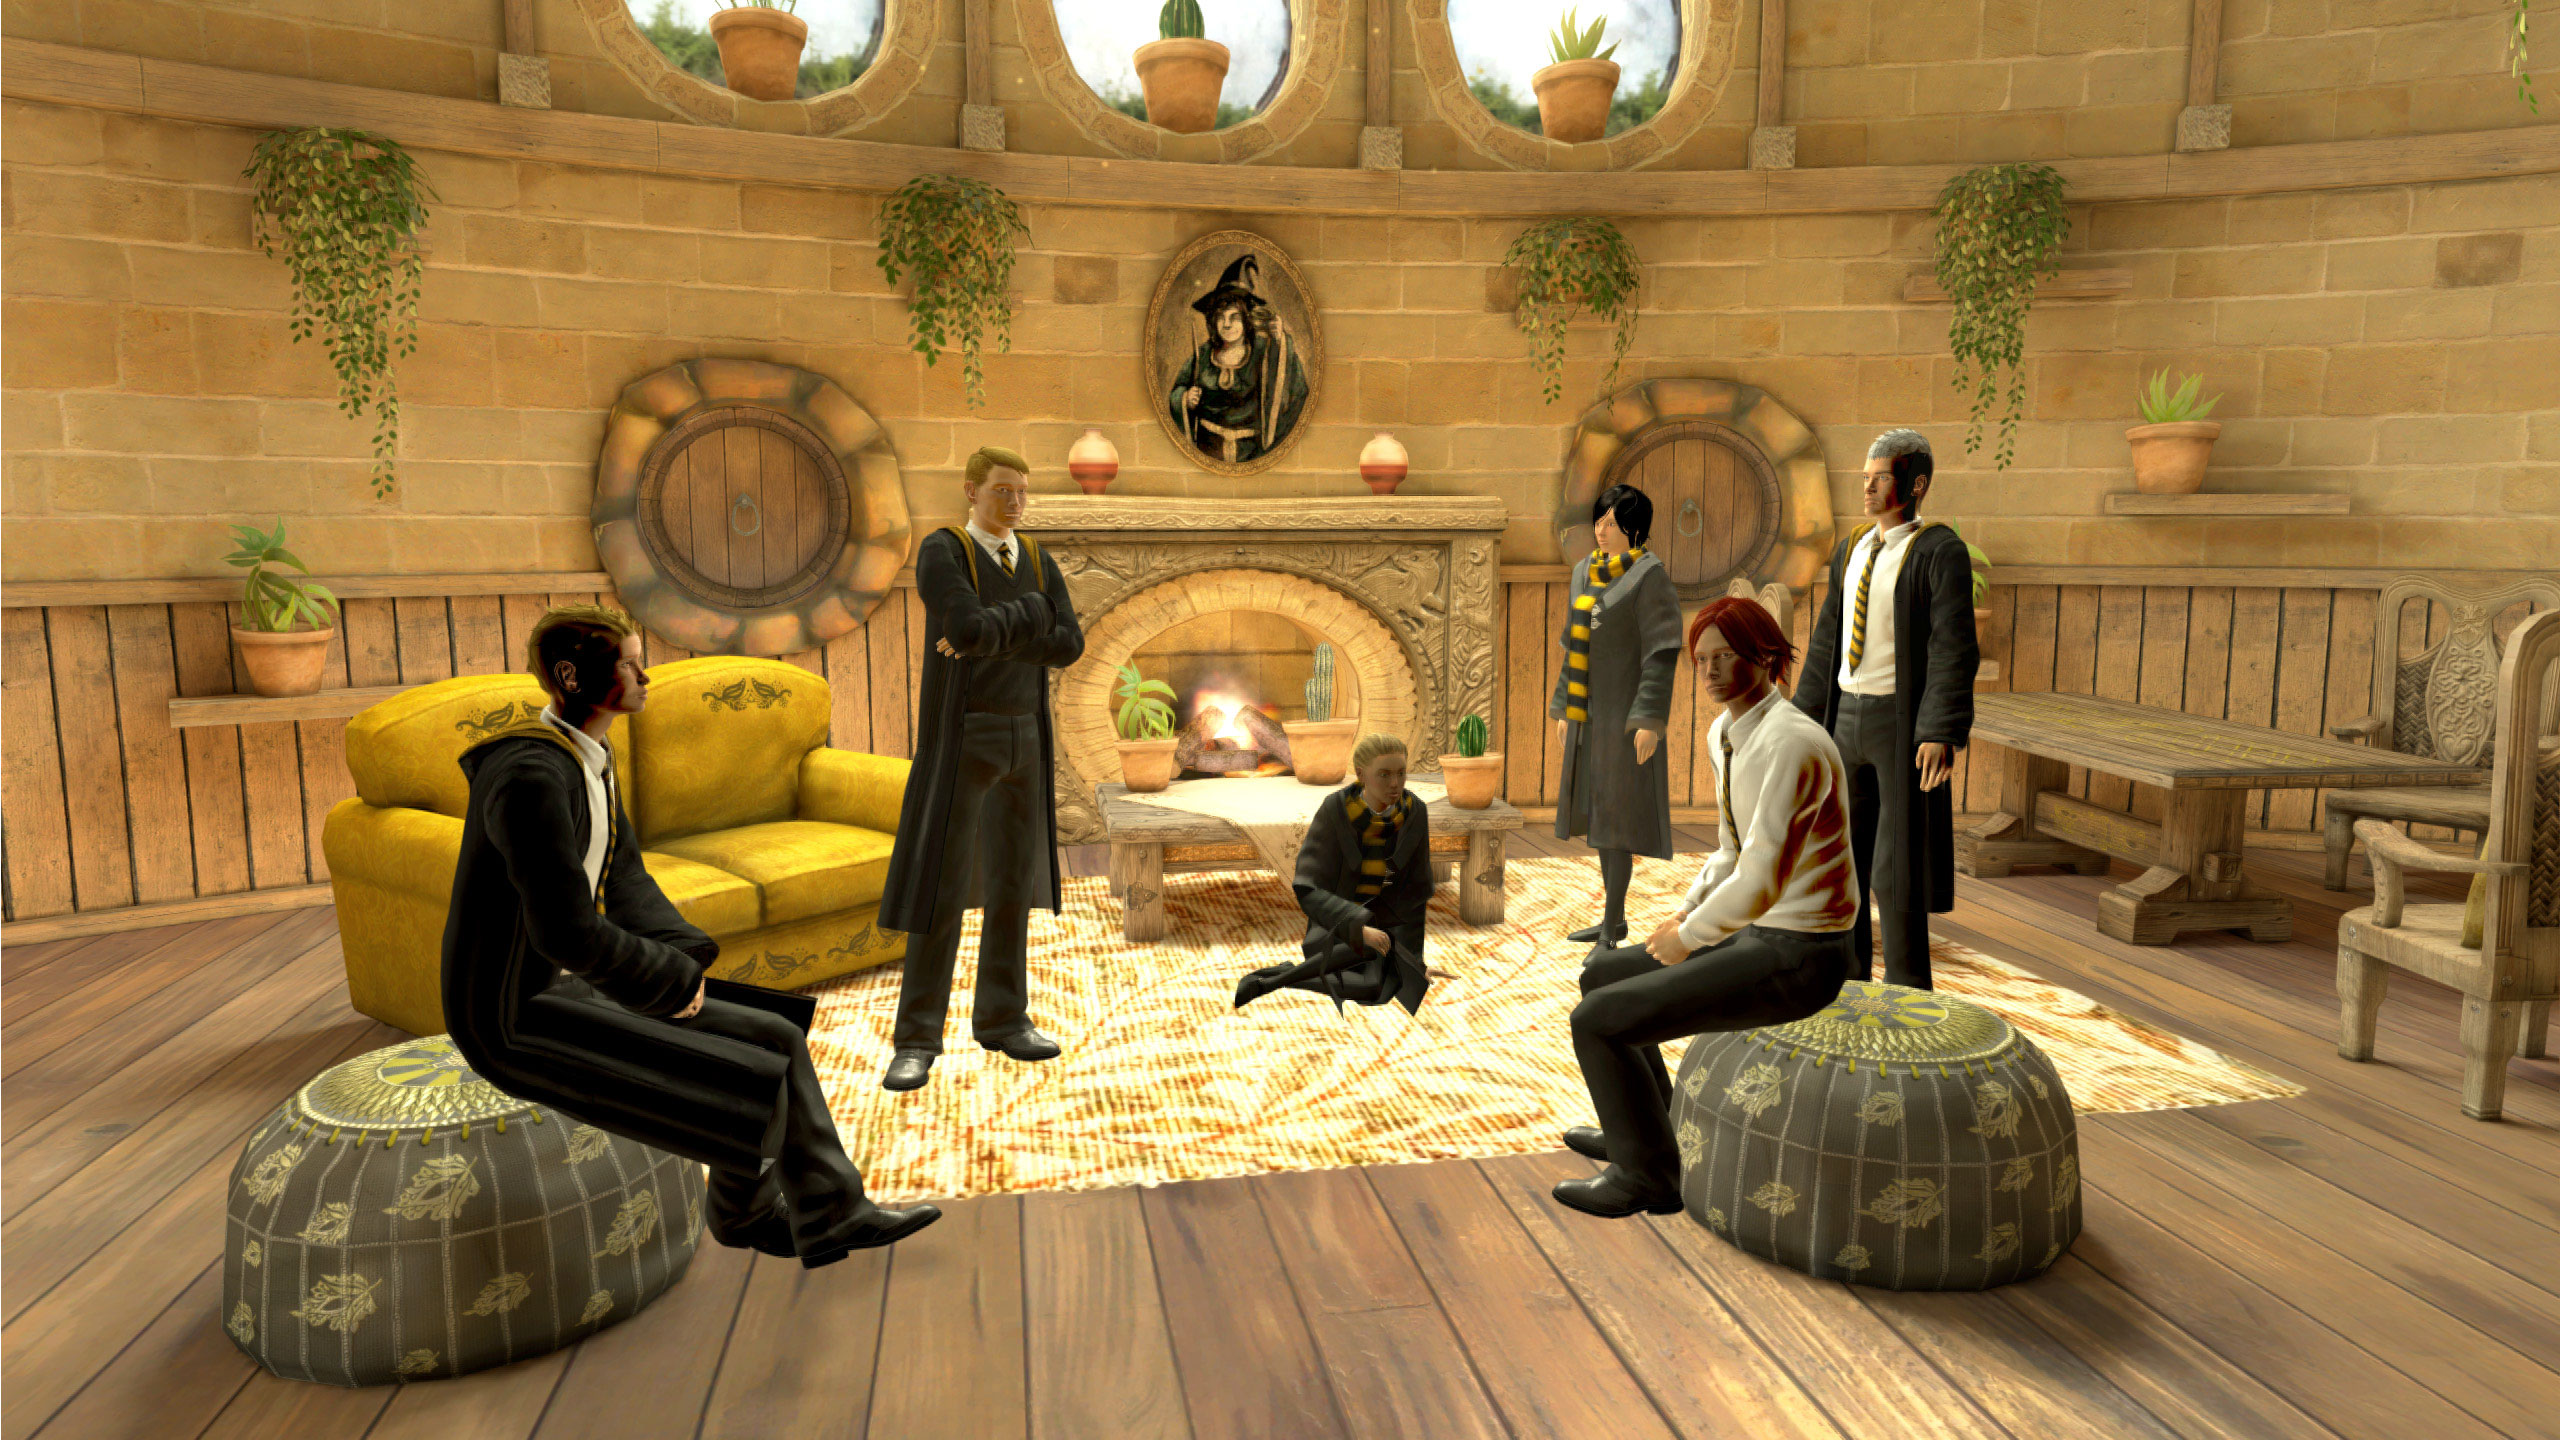 1000 images about Hufflepuff Common Room on Pinterest